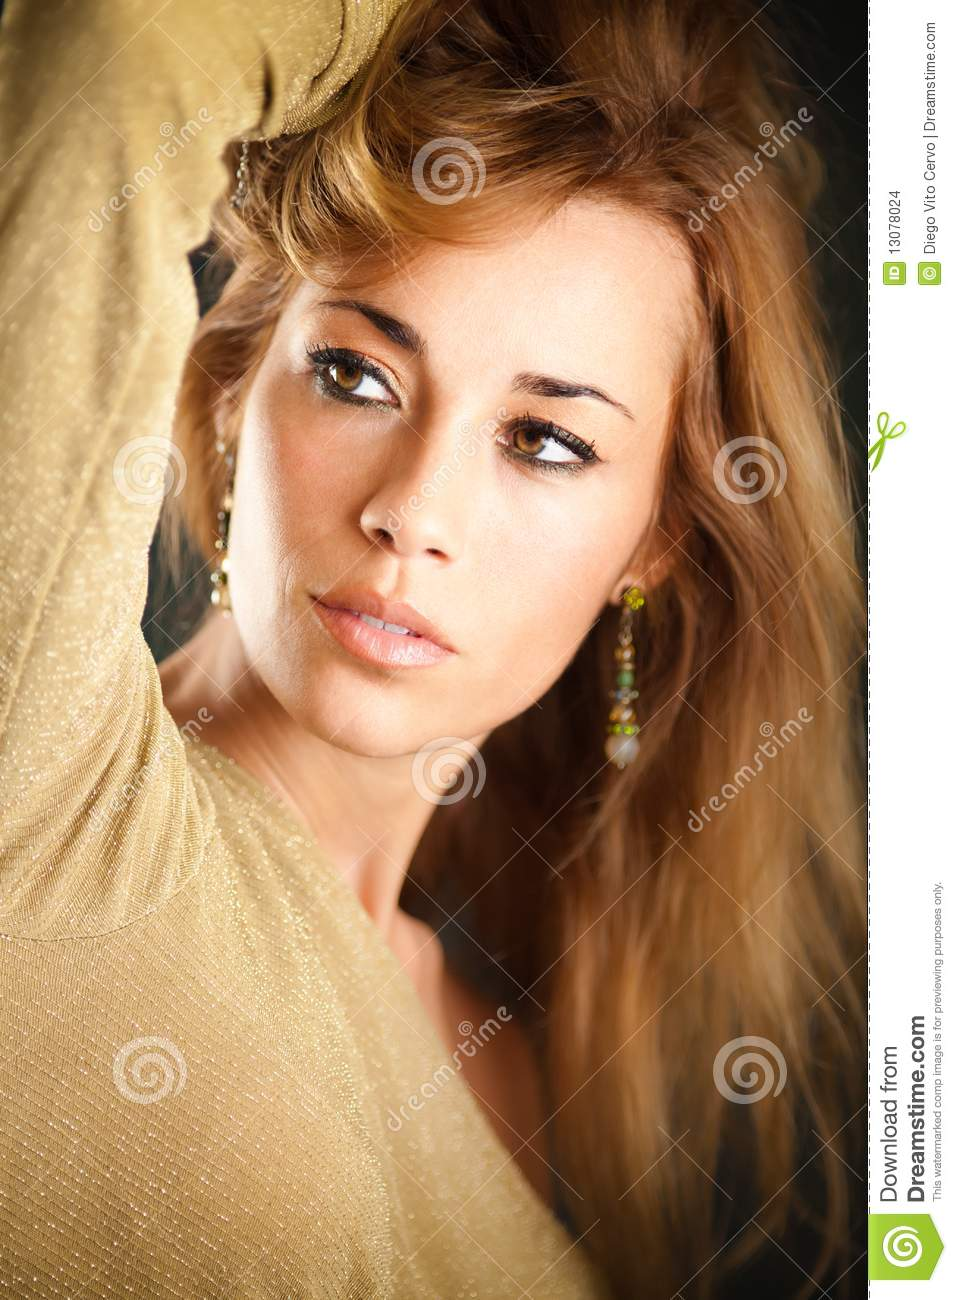 Attractive Woman Touching Hair Stock Photo - Image of look